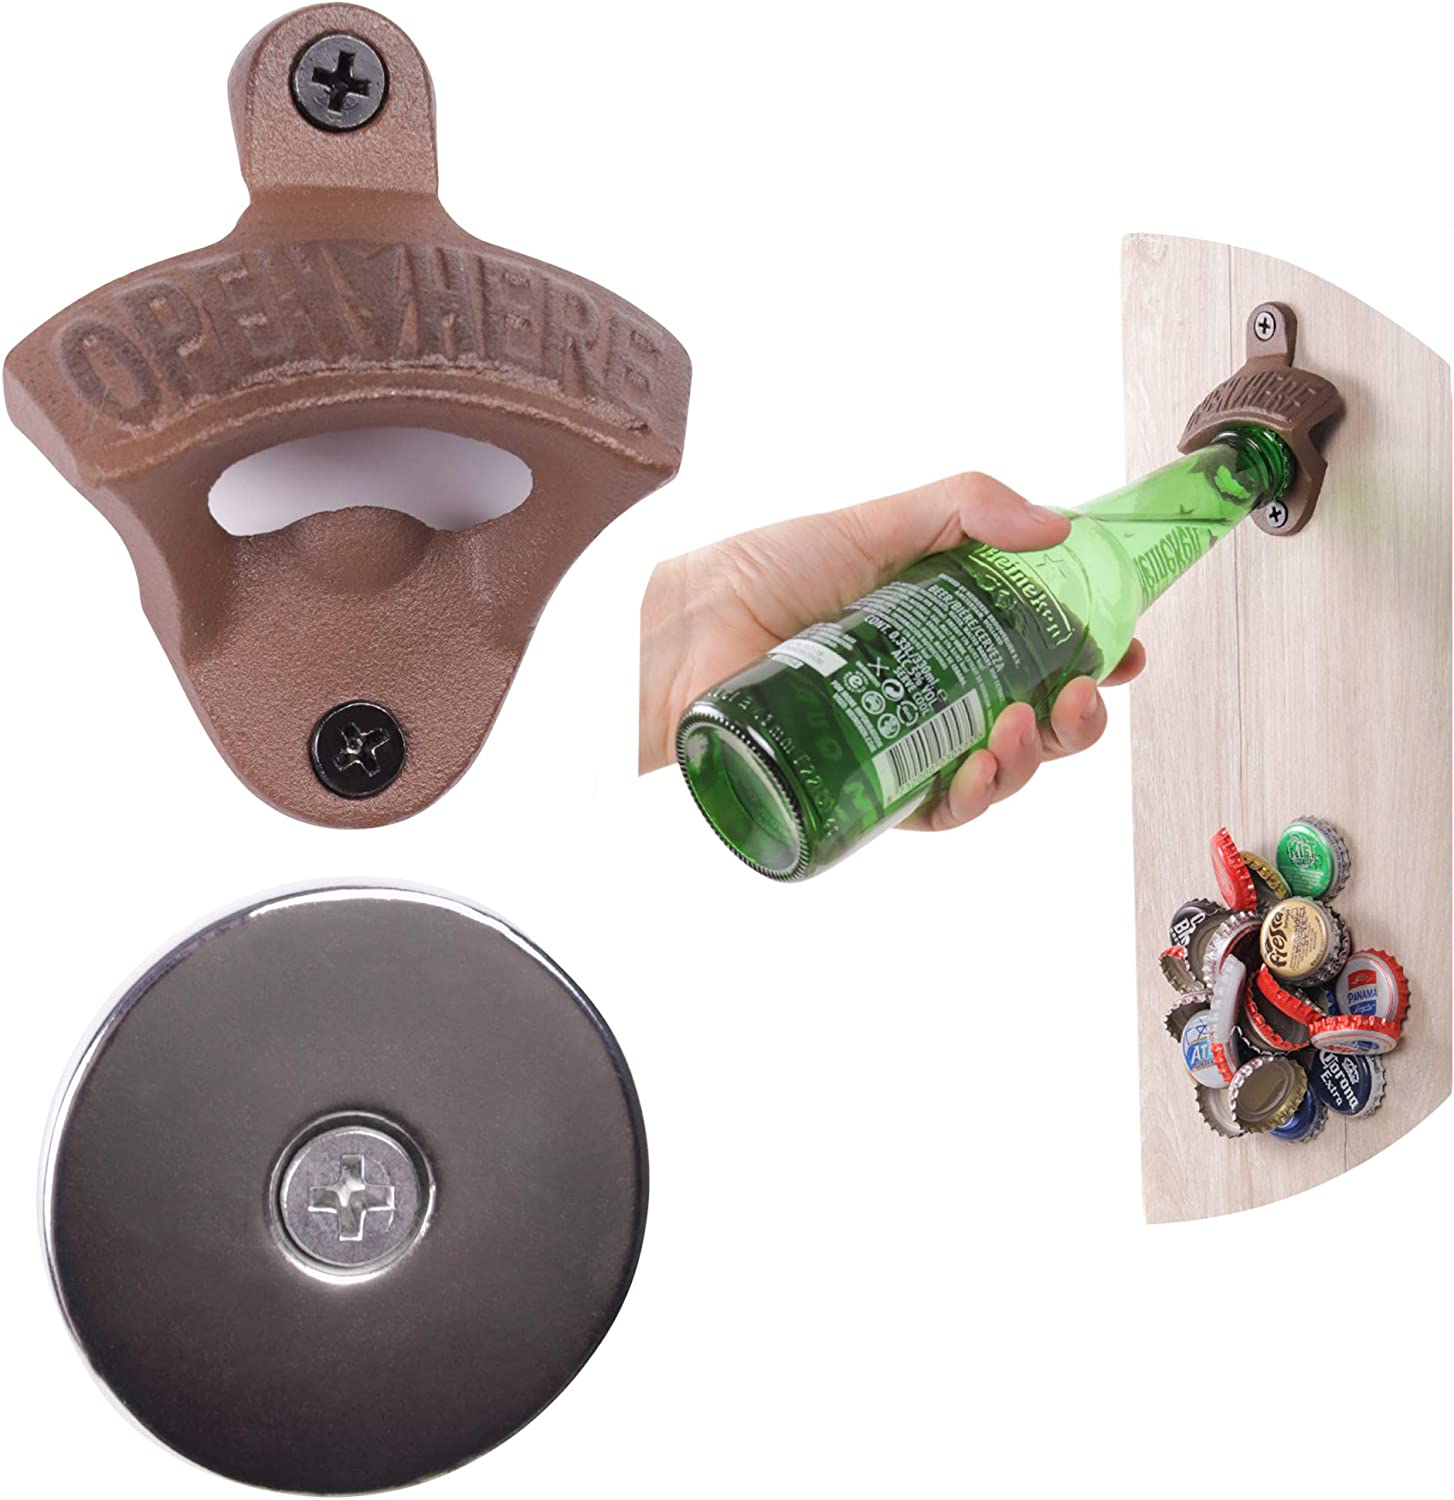 Amazon Com Best Bottle Opener Wall Mounted Rustic Vintage Cast Iron With Magnet Cap Catcher Housewarming Gifts For Men By Beerust Great As Beer Accessories Barware Kitchen And Man Cave